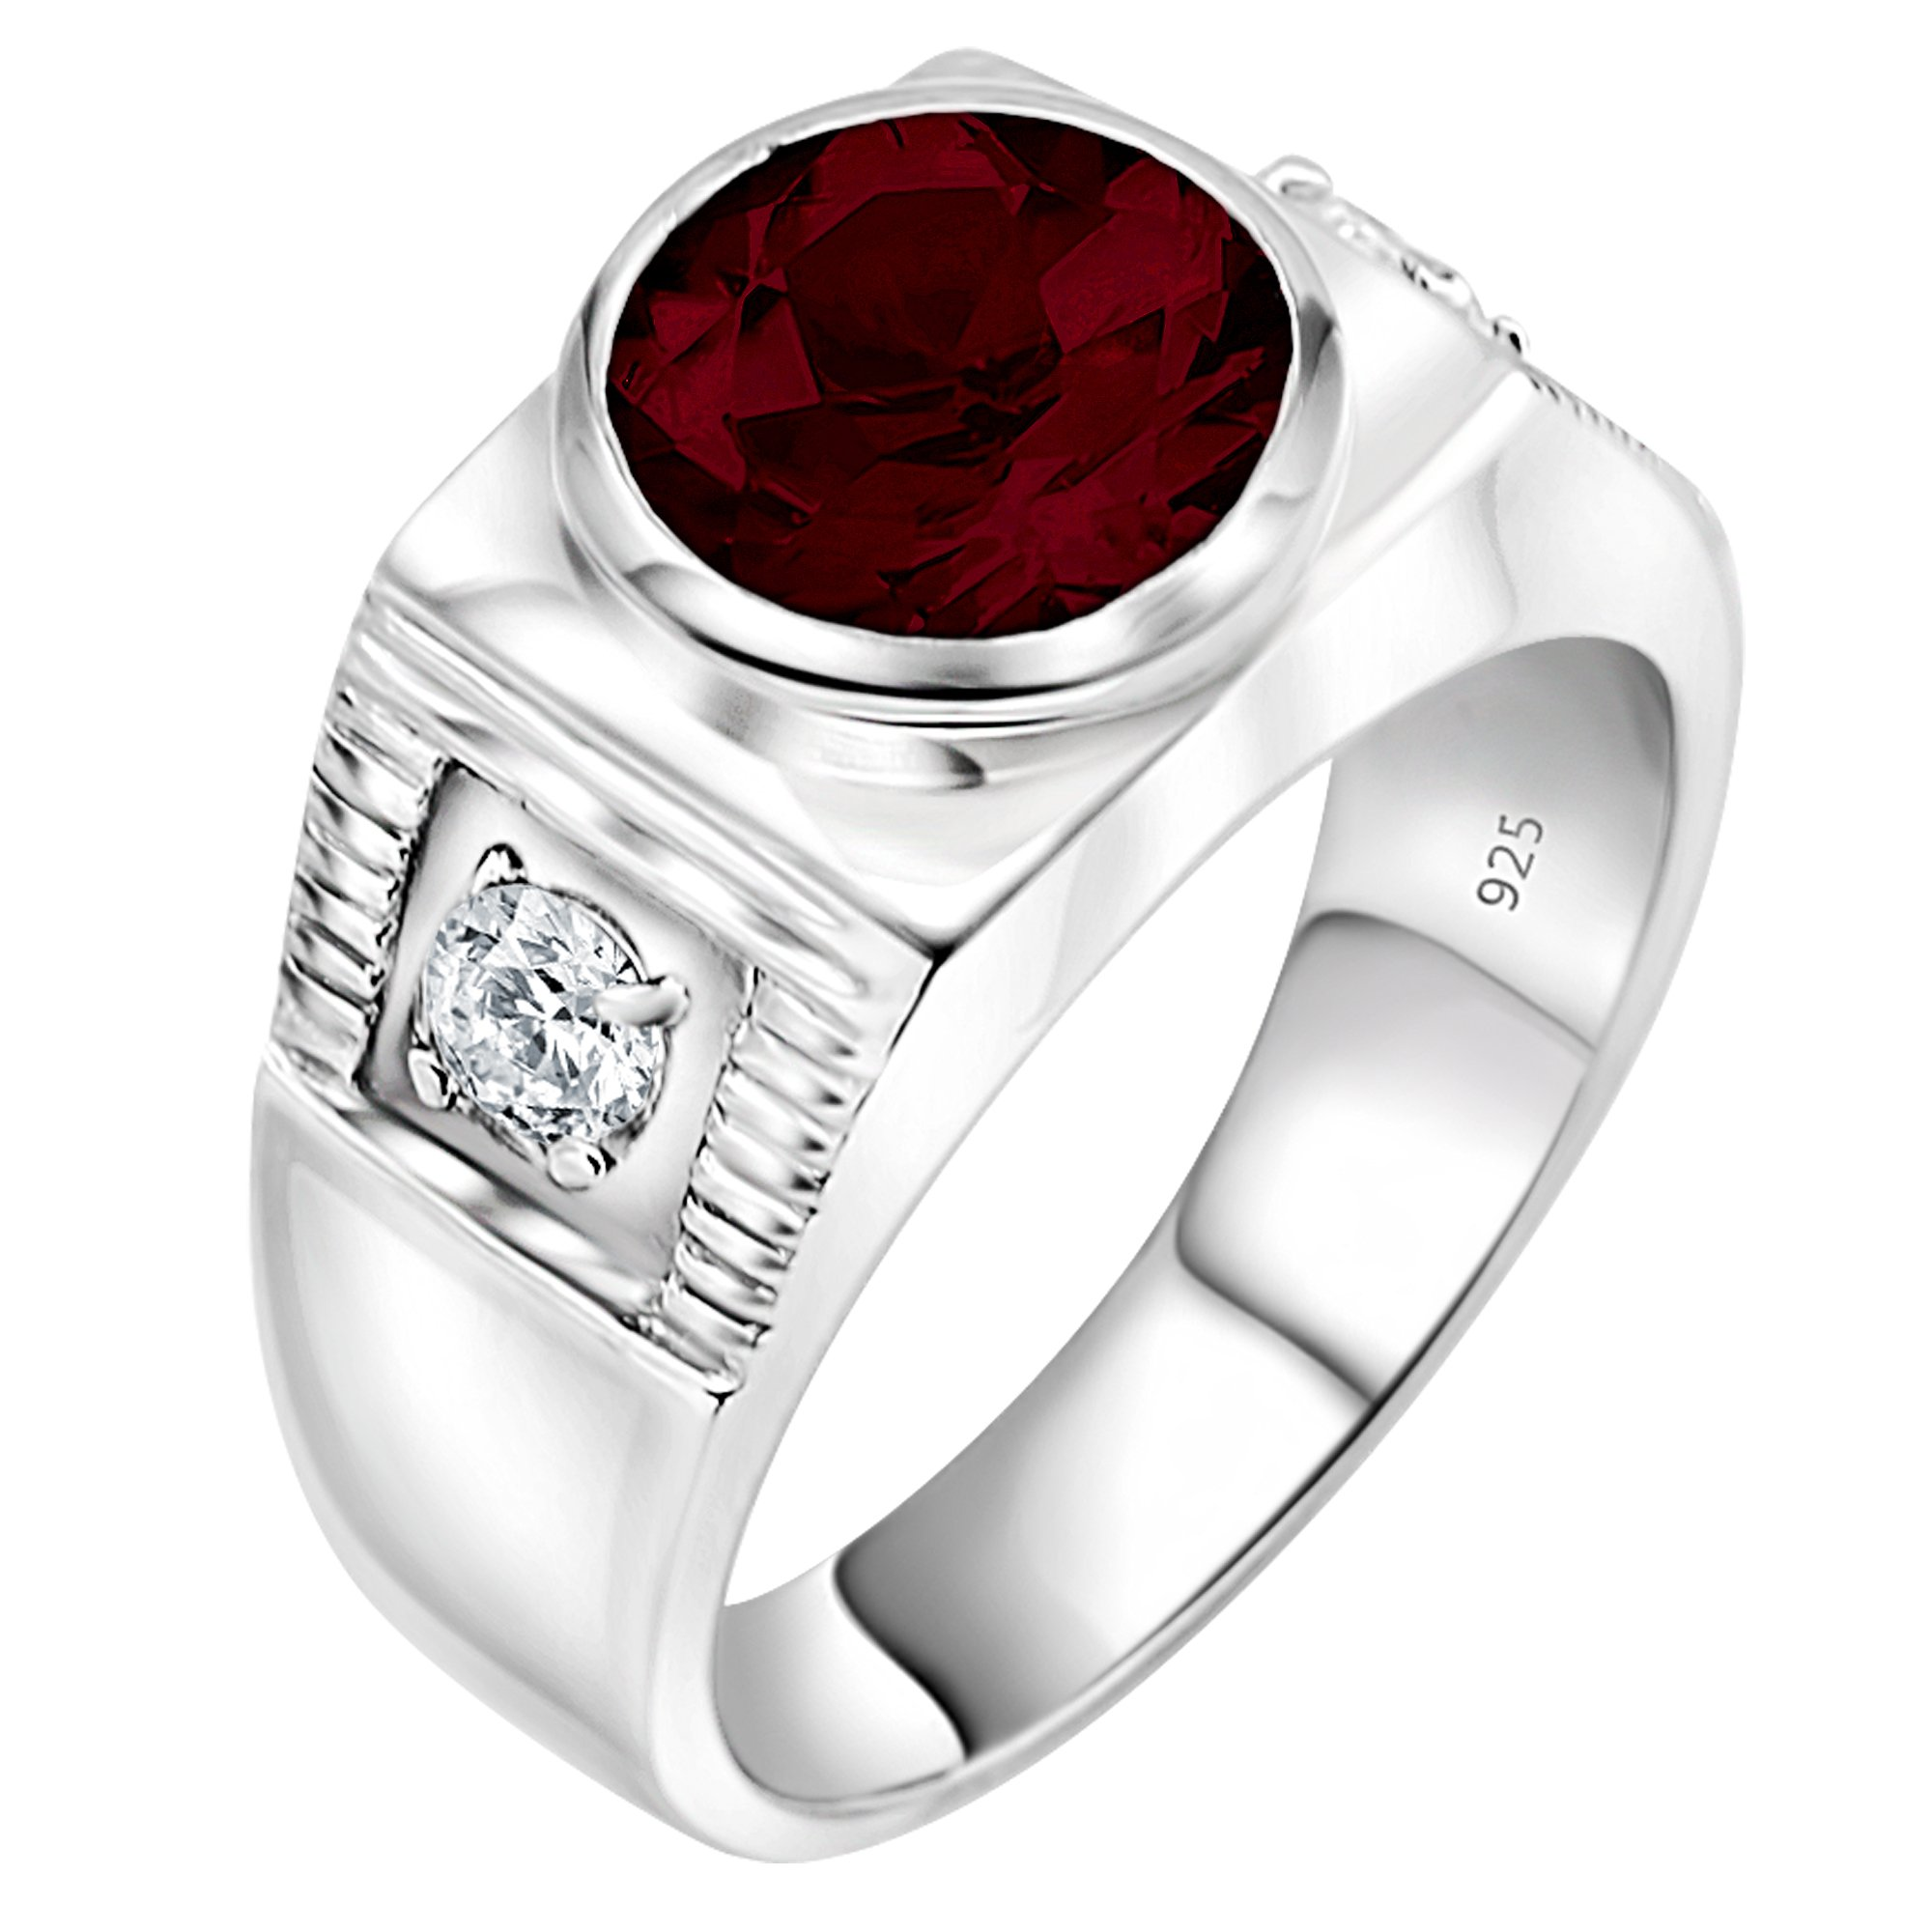 Men's Sterling Silver .925 Ring with 2.5ct Red Round Center CZ Stone and 2 White Cubic Zirconia (CZ) Stones